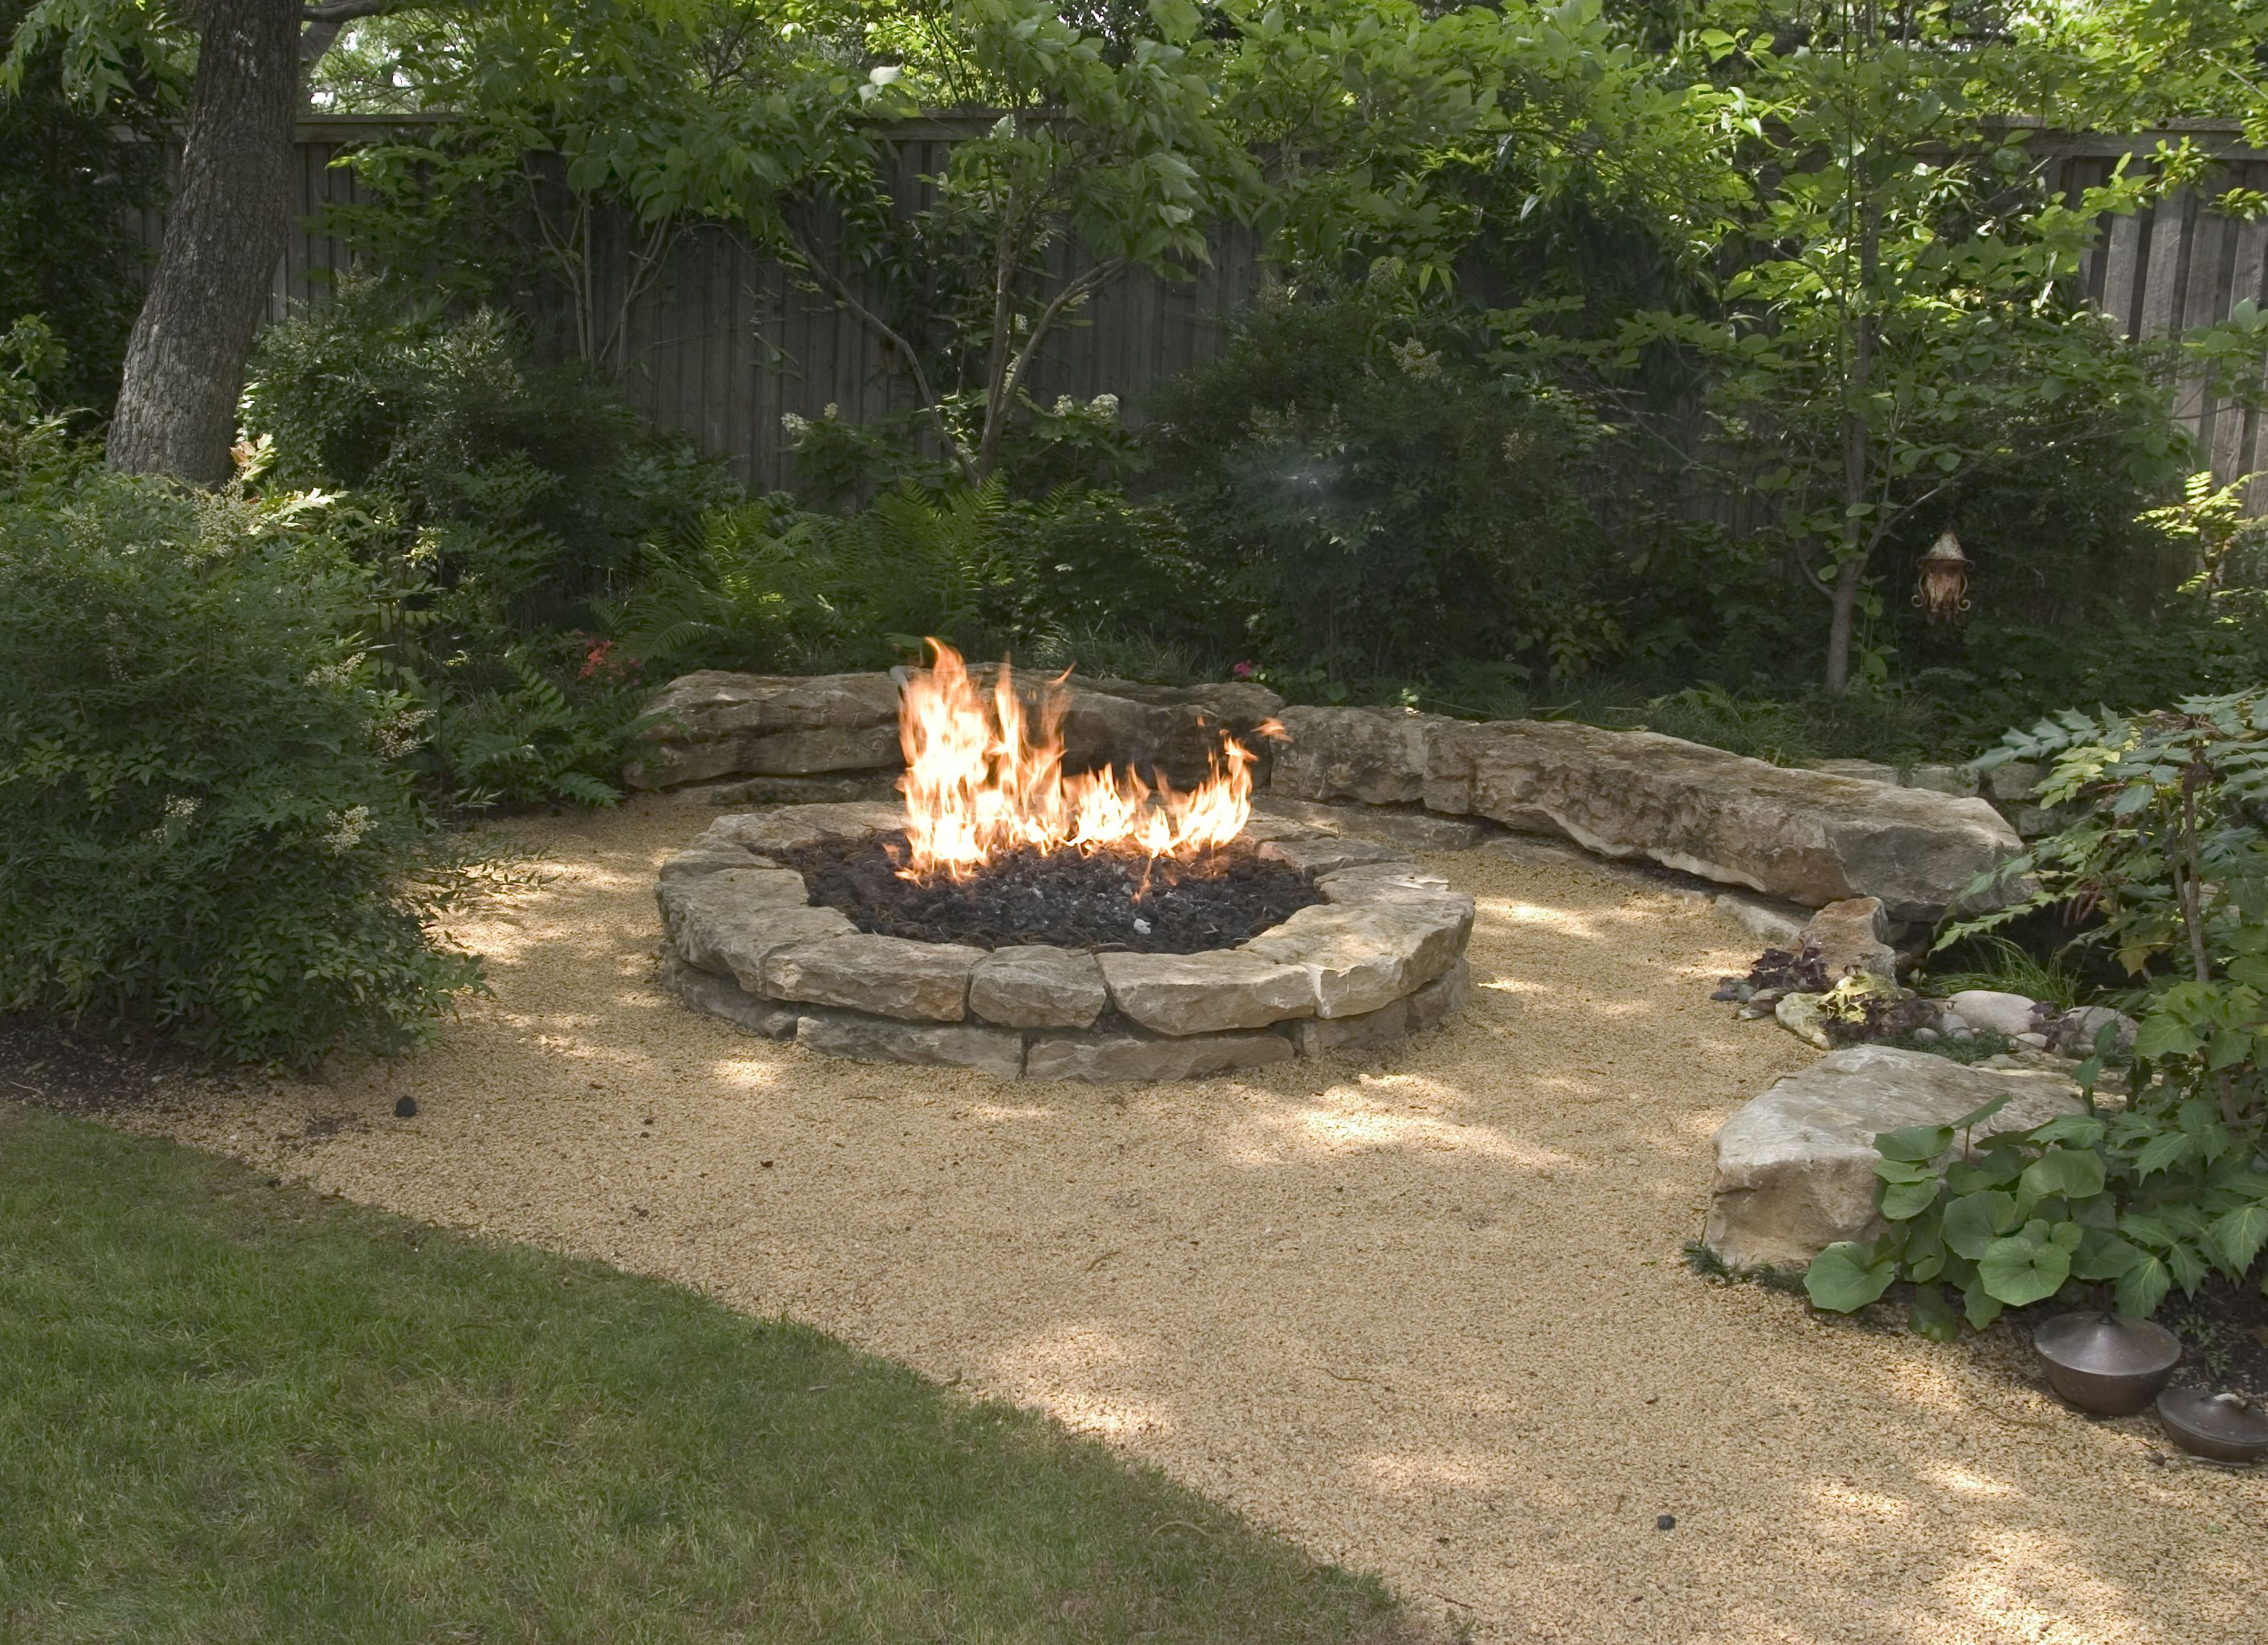 Backyard Landscaping Ideas-Attractive Fire Pit Designs | Barns ... on home landscaping designs, home photography studio designs, home dining room designs, home bar designs, home garage designs, home brick designs, home patio designs, home grill designs, home internet designs, home fireplace designs, home game room designs, home bocce ball court designs, home great room designs, home library designs, home backyard designs, home house plans designs, home garden designs, home putting green designs, home shower designs, home steam room designs,